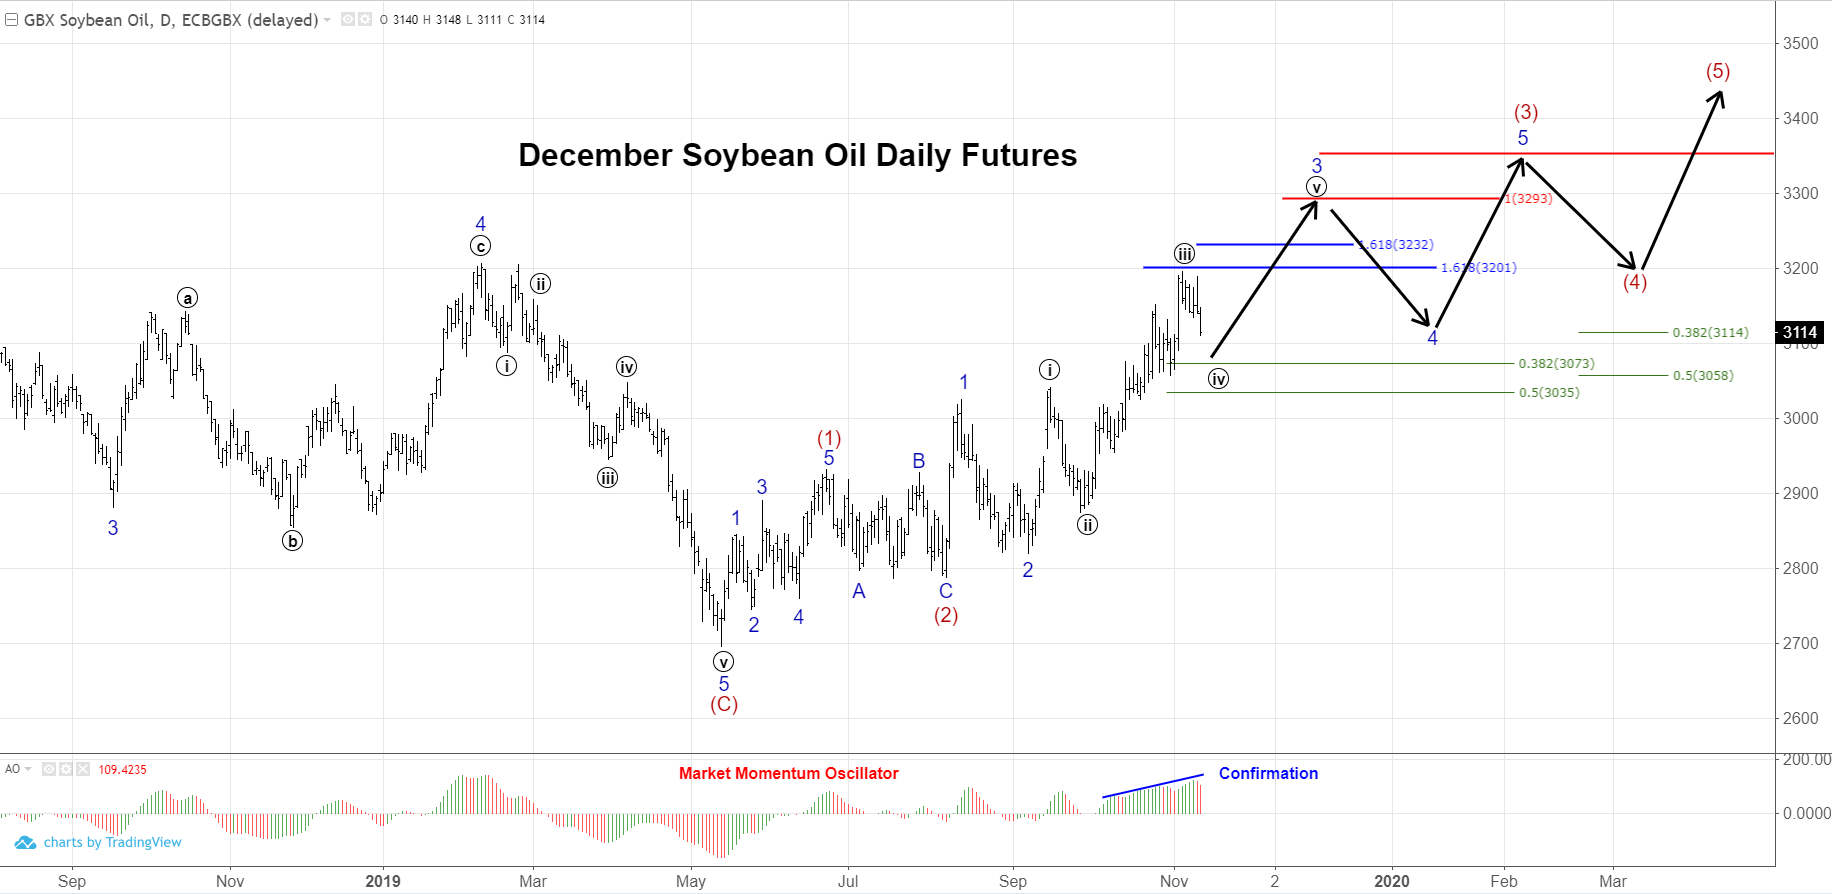 Elliott Wave count for December soybean oil futures